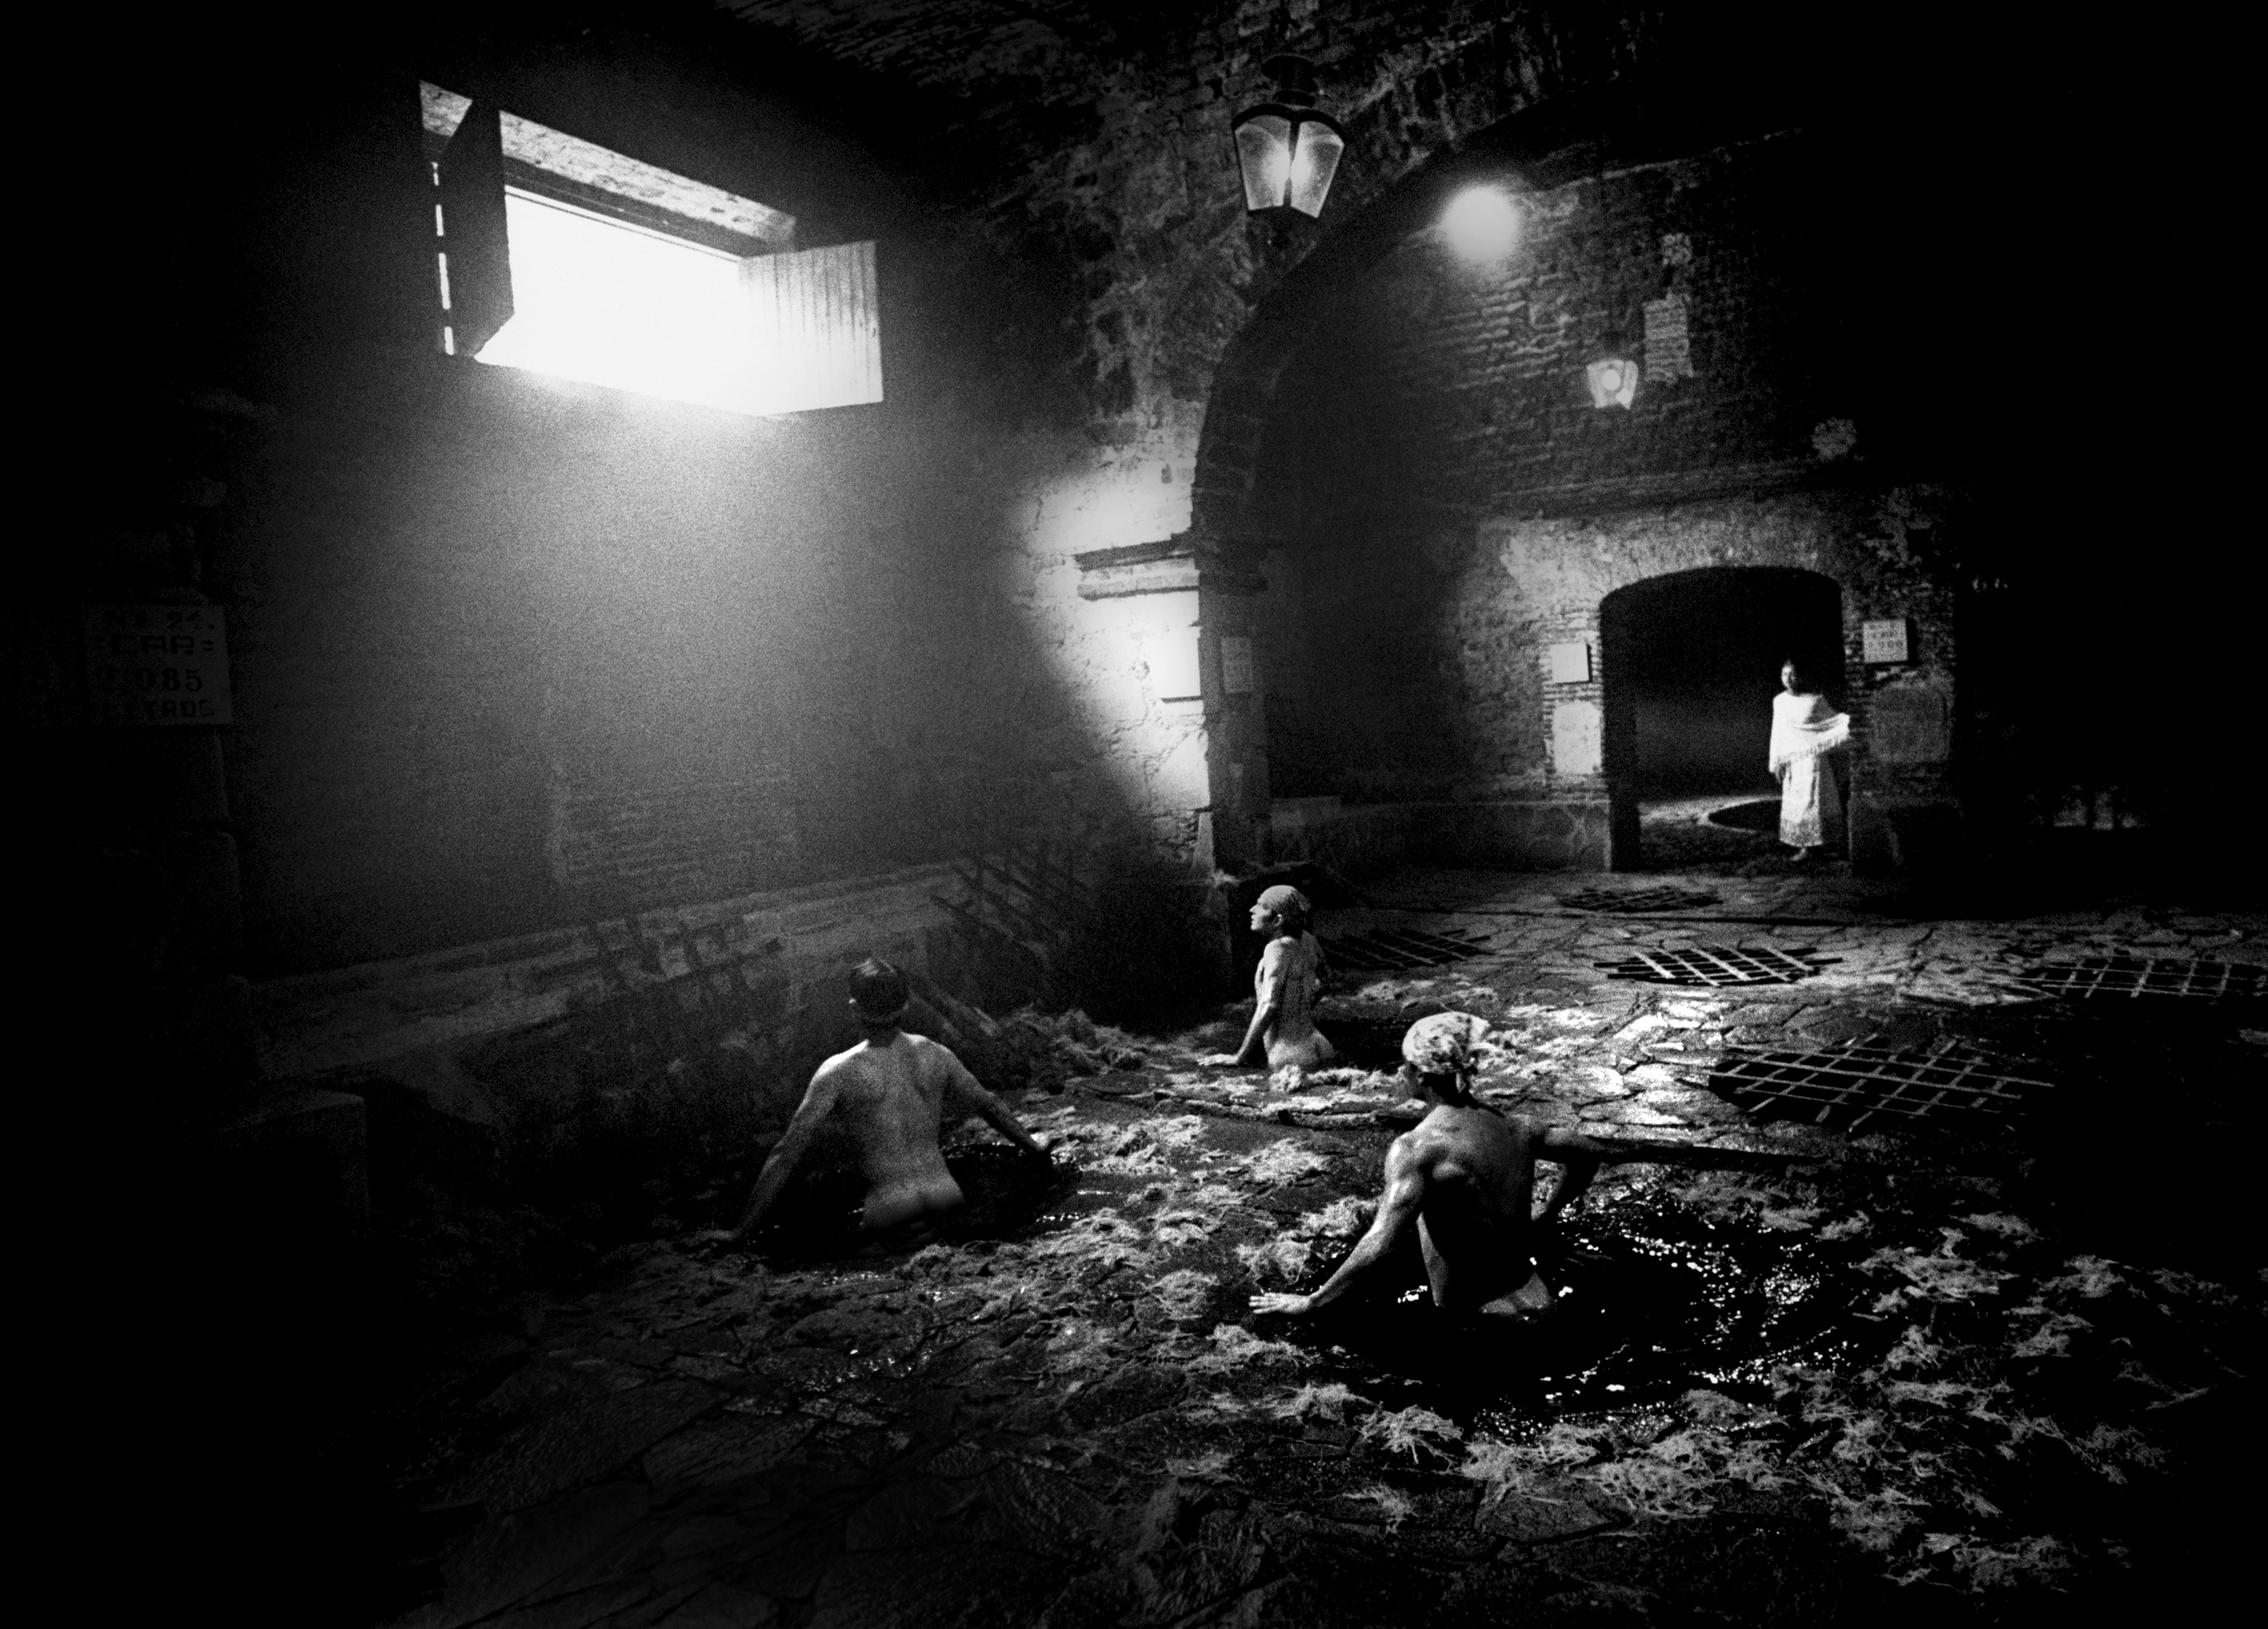 Tequila, Mexico. ©2009 Doug Menuez. At Fotokina a silver gelatin print of this image was hung next to an inkjet print made on Innova FibaGloss in a comparison test. Most photographers chose the inkjet print when asked to identify the silver print.